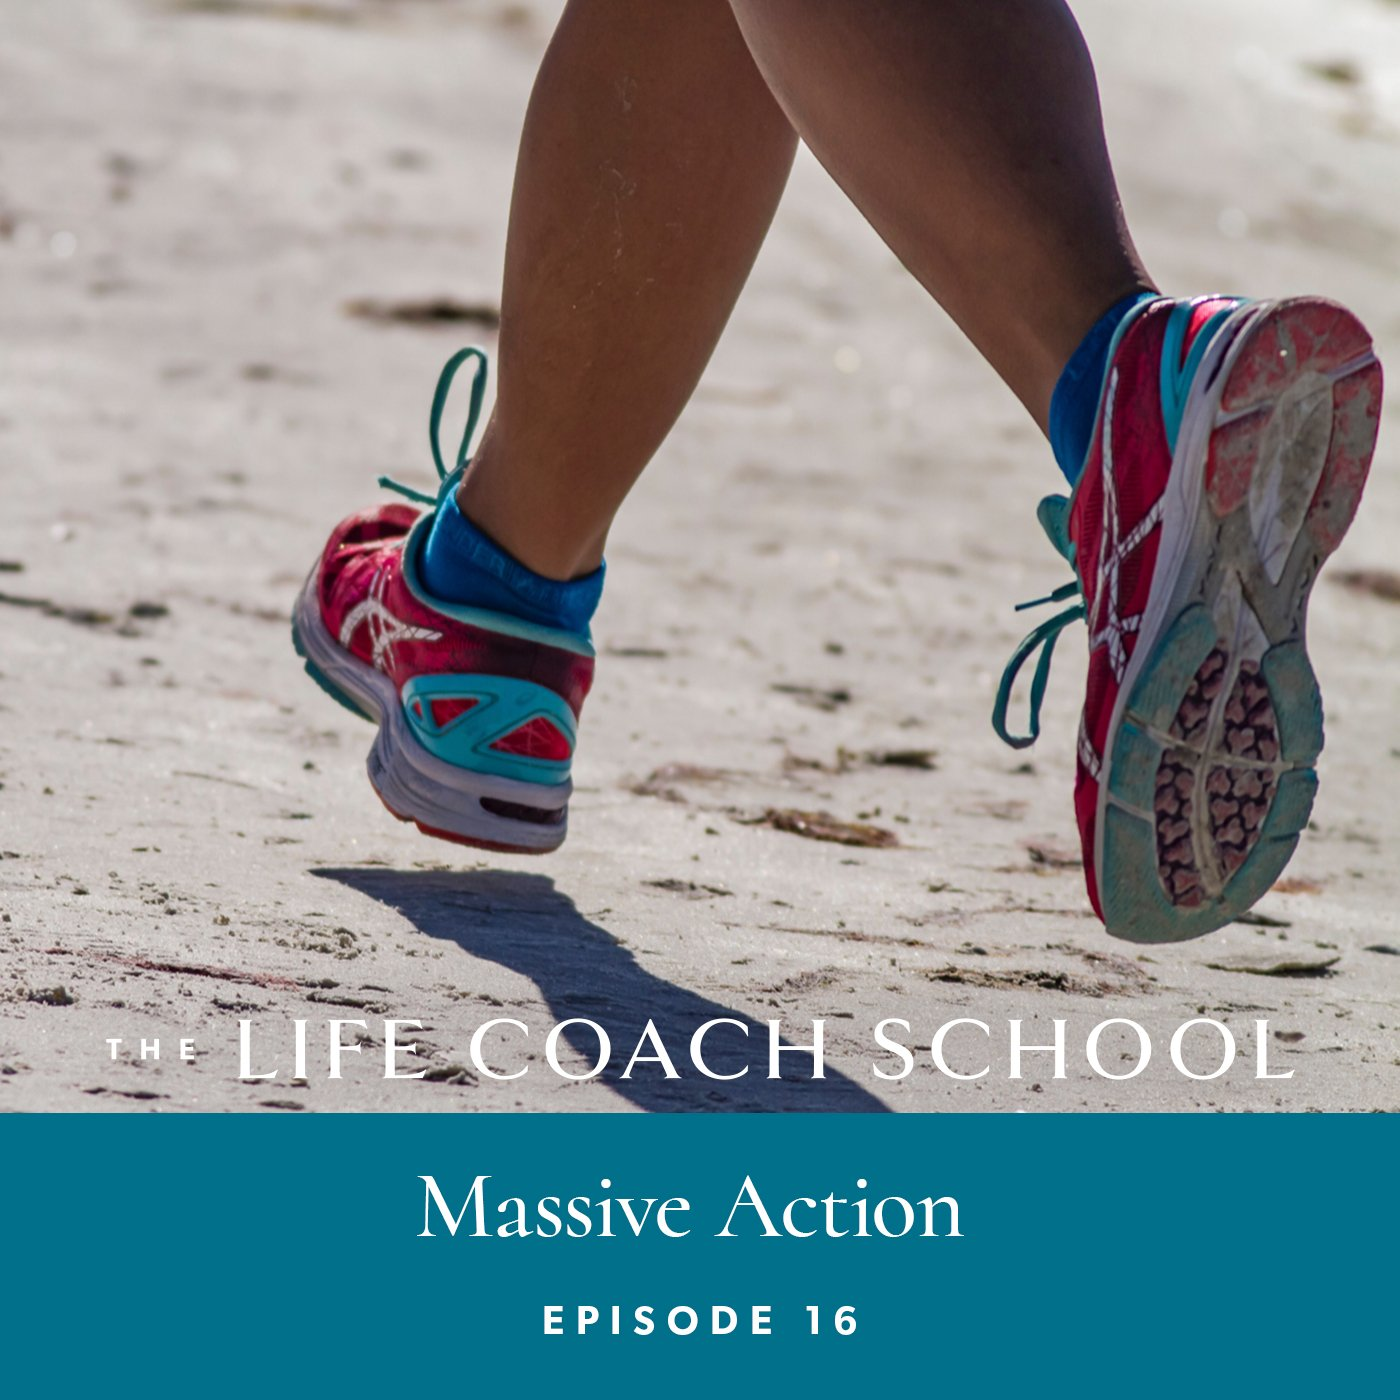 The Life Coach School Podcast with Brooke Castillo | Episode 16 | Massive Action